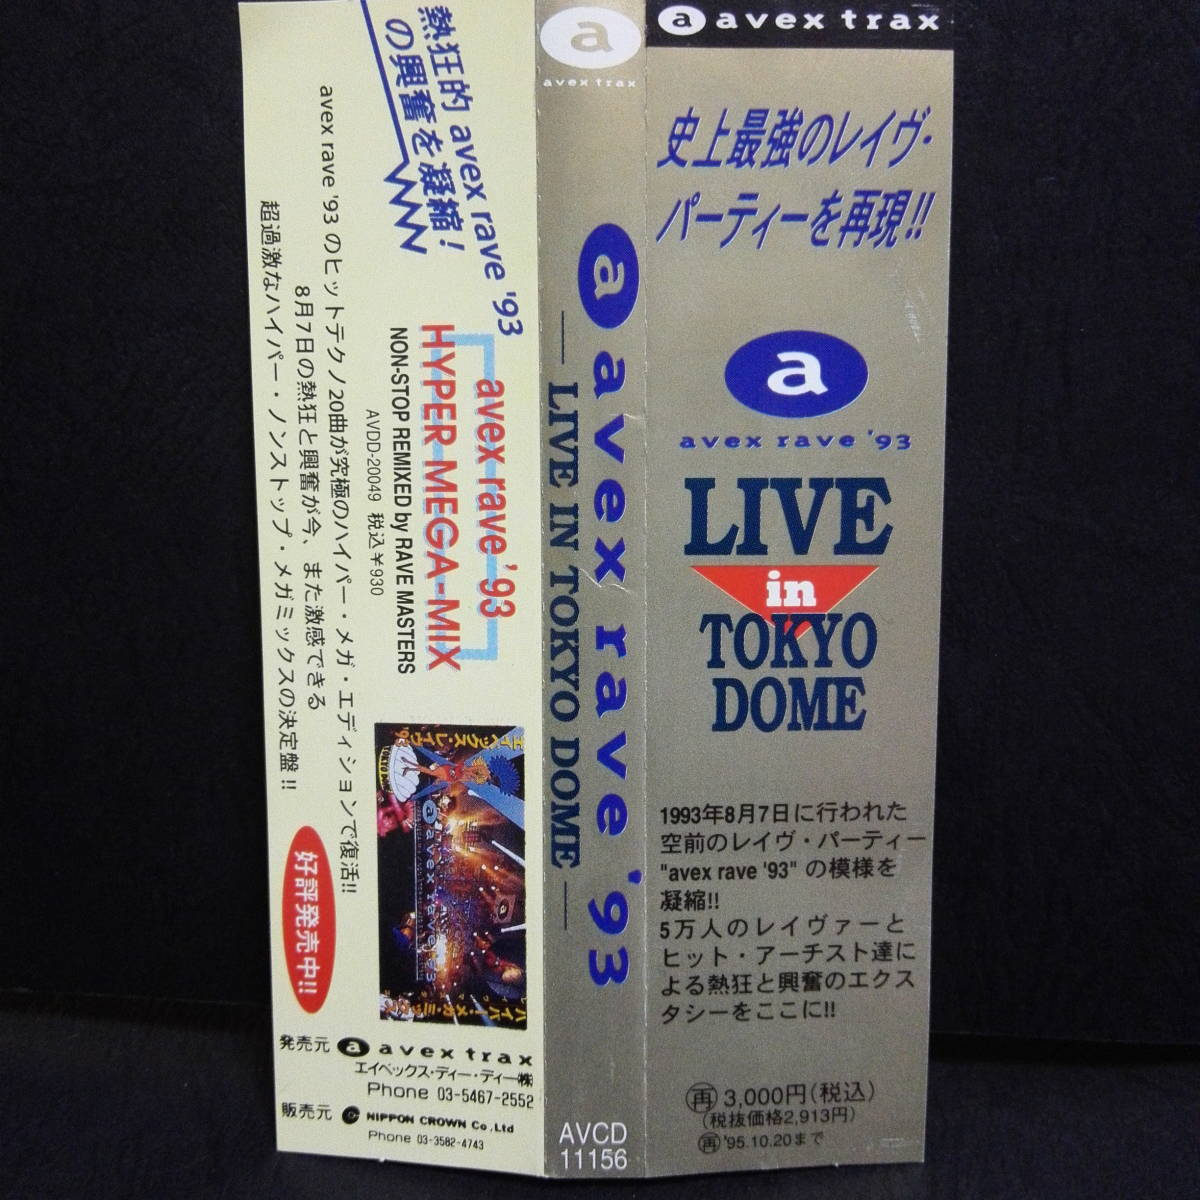 avex rave 93 LIVE in Tokyo Dome 帯付 全16曲LIVE 音源CD ジュリアナテクノ イタロ 90s DISCO JHON ROBINSON trf Maximizor L.A.STYLE_画像9